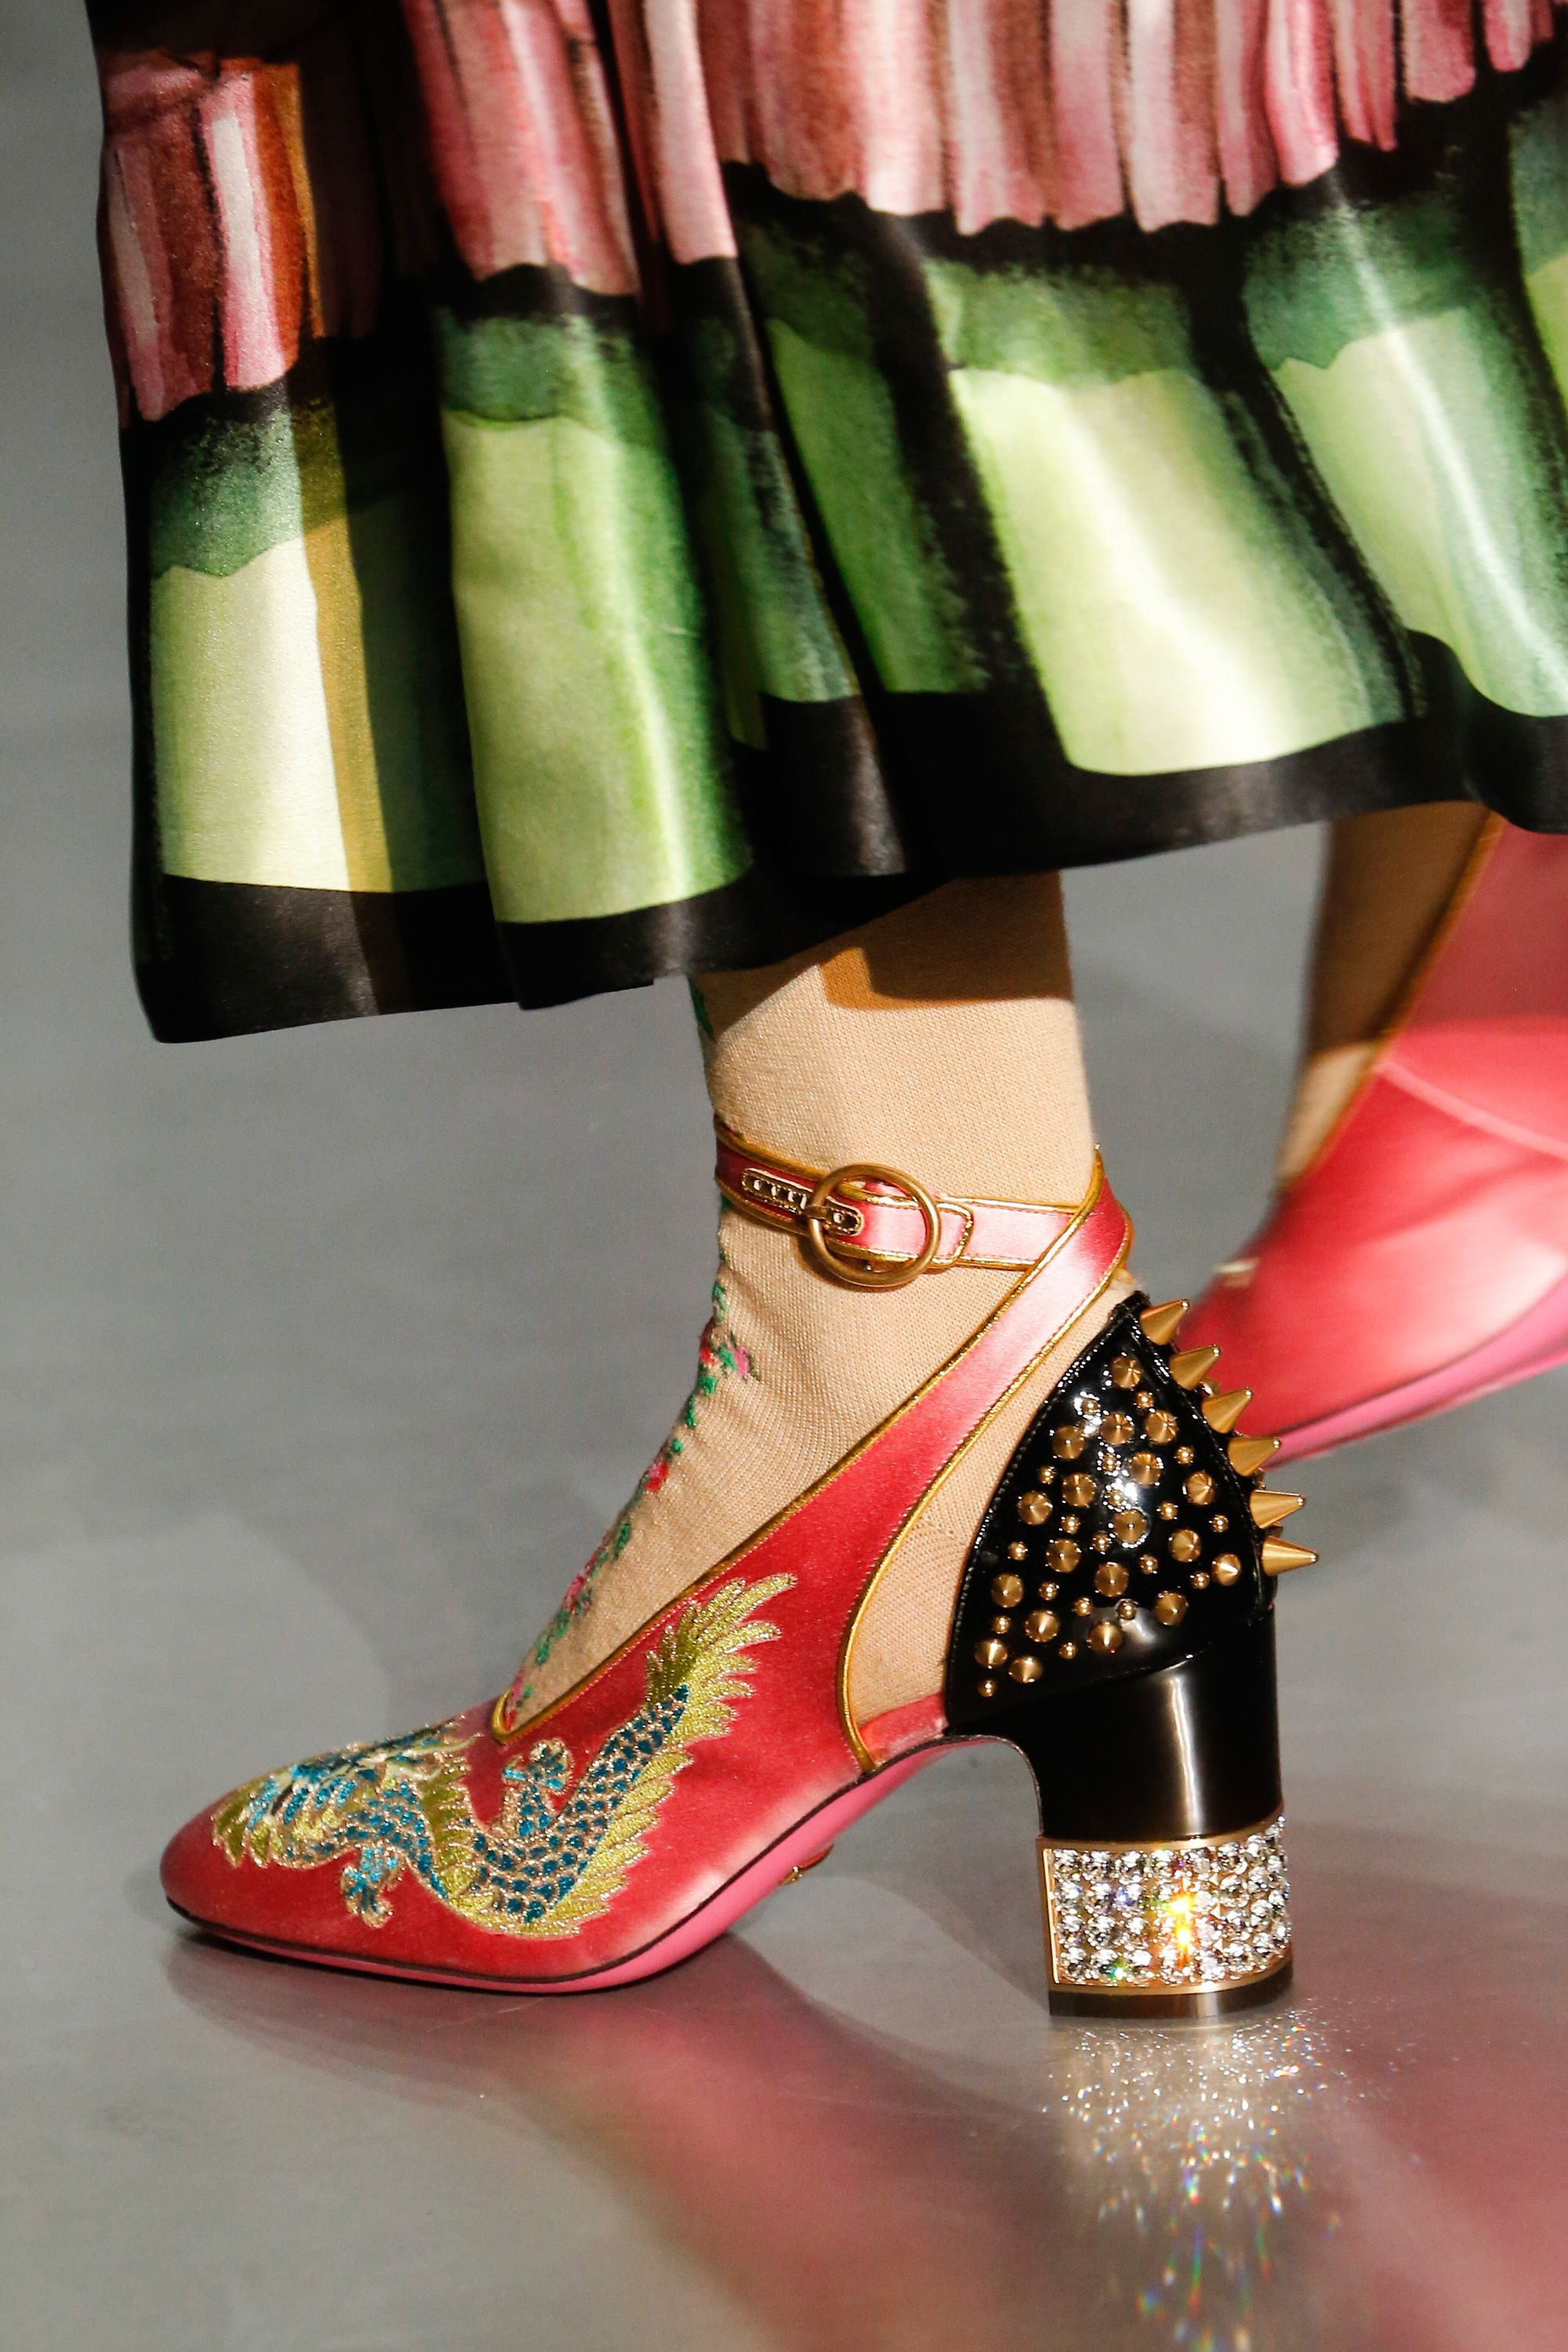 gucci 2017 shoes. gucci autumn/winter 2017 ready to wear details shoes f